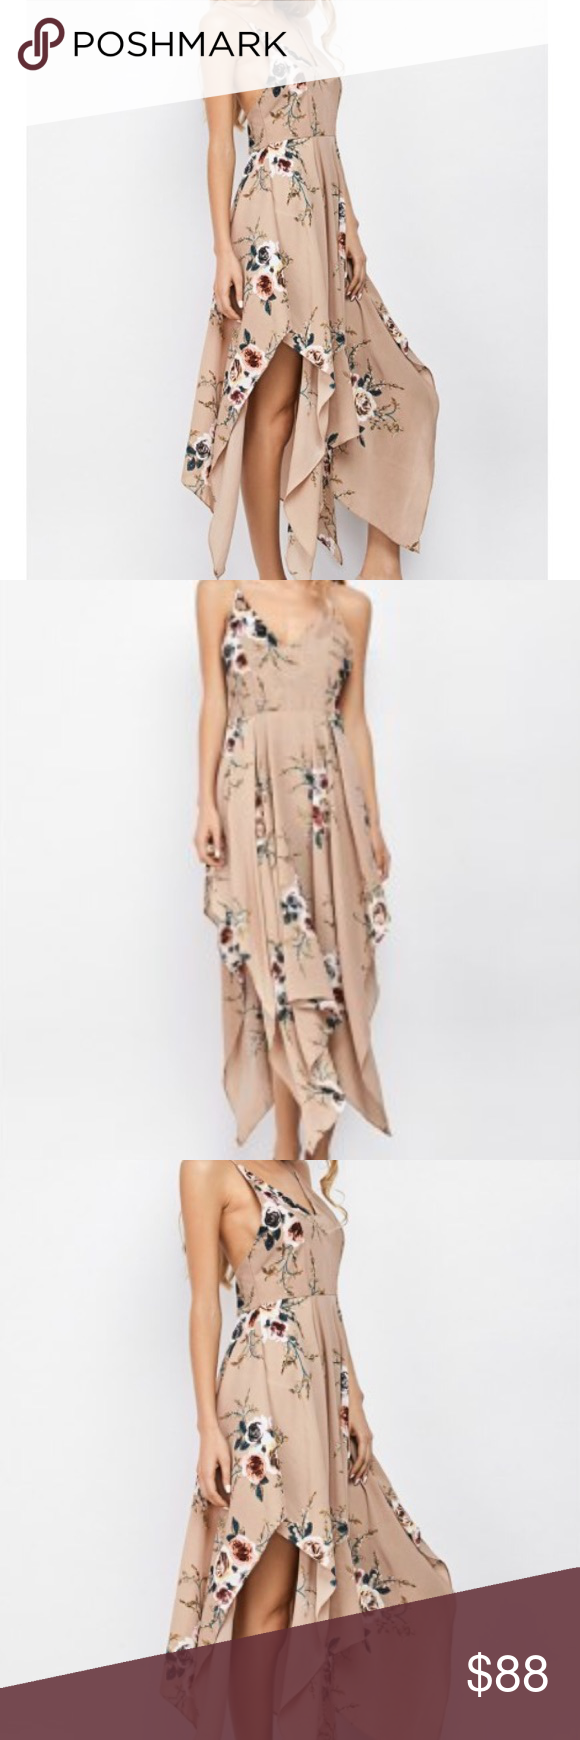 Tan Floral Bohemian Maxi Dress Cute Summer Dress Perfect For Summer Time A Line Sleeveless Ankle Length Material Polyest Fashion Dresses Bohemian Maxi Dress [ 1740 x 580 Pixel ]